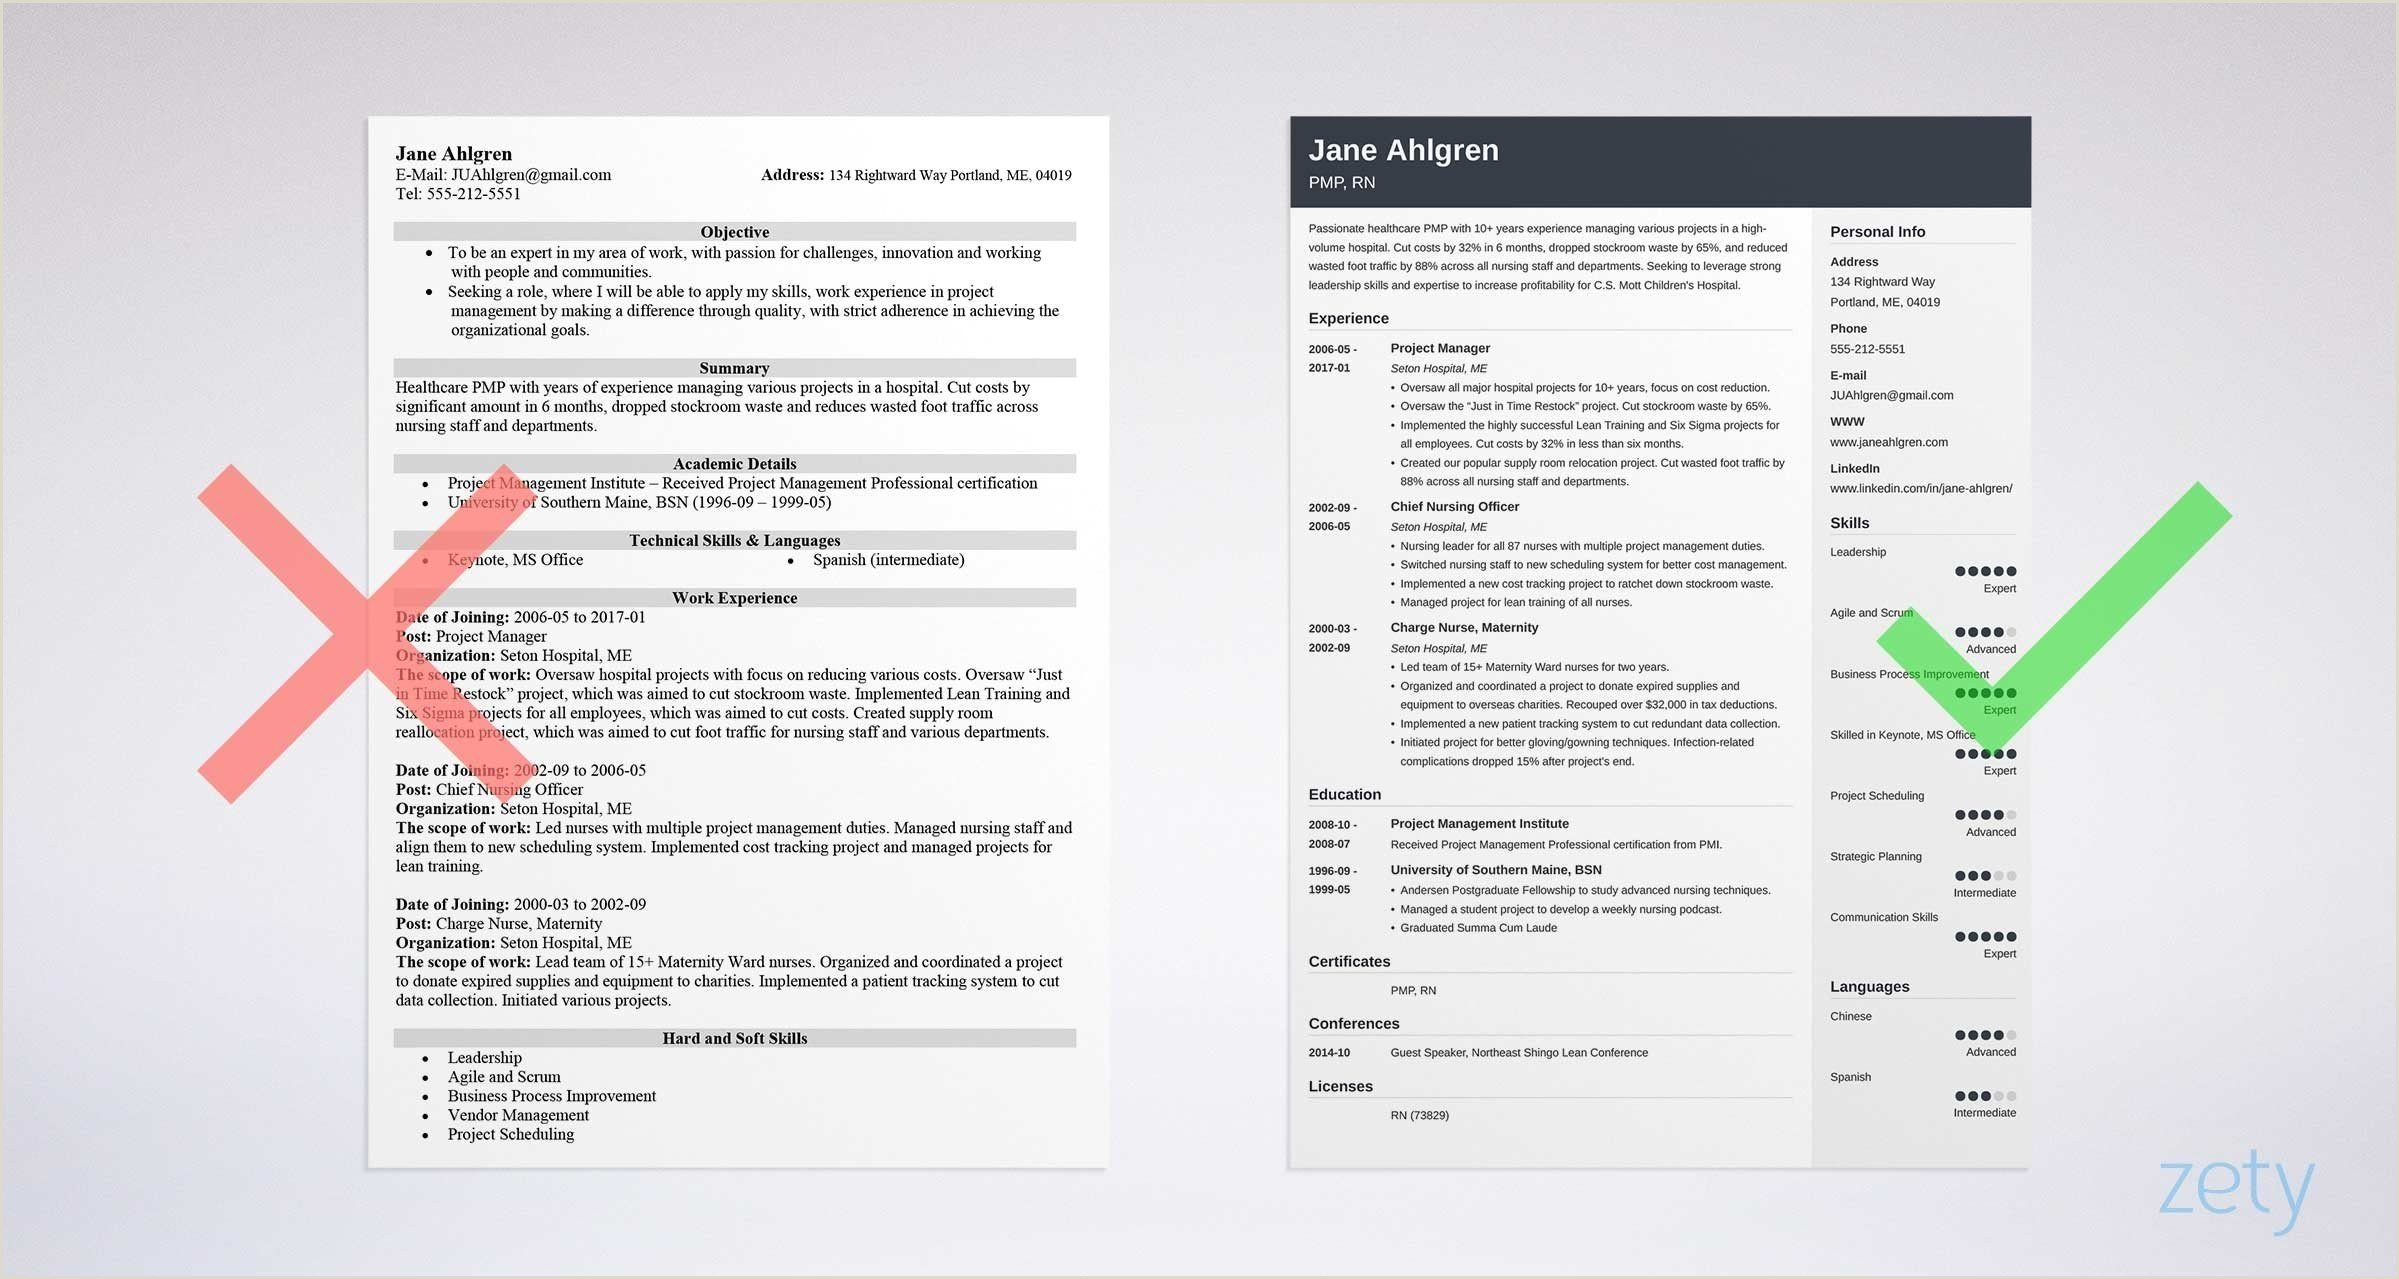 Fresher Resume format for Job Interview Cv Vs Resume Difference Definitions & when to Use which